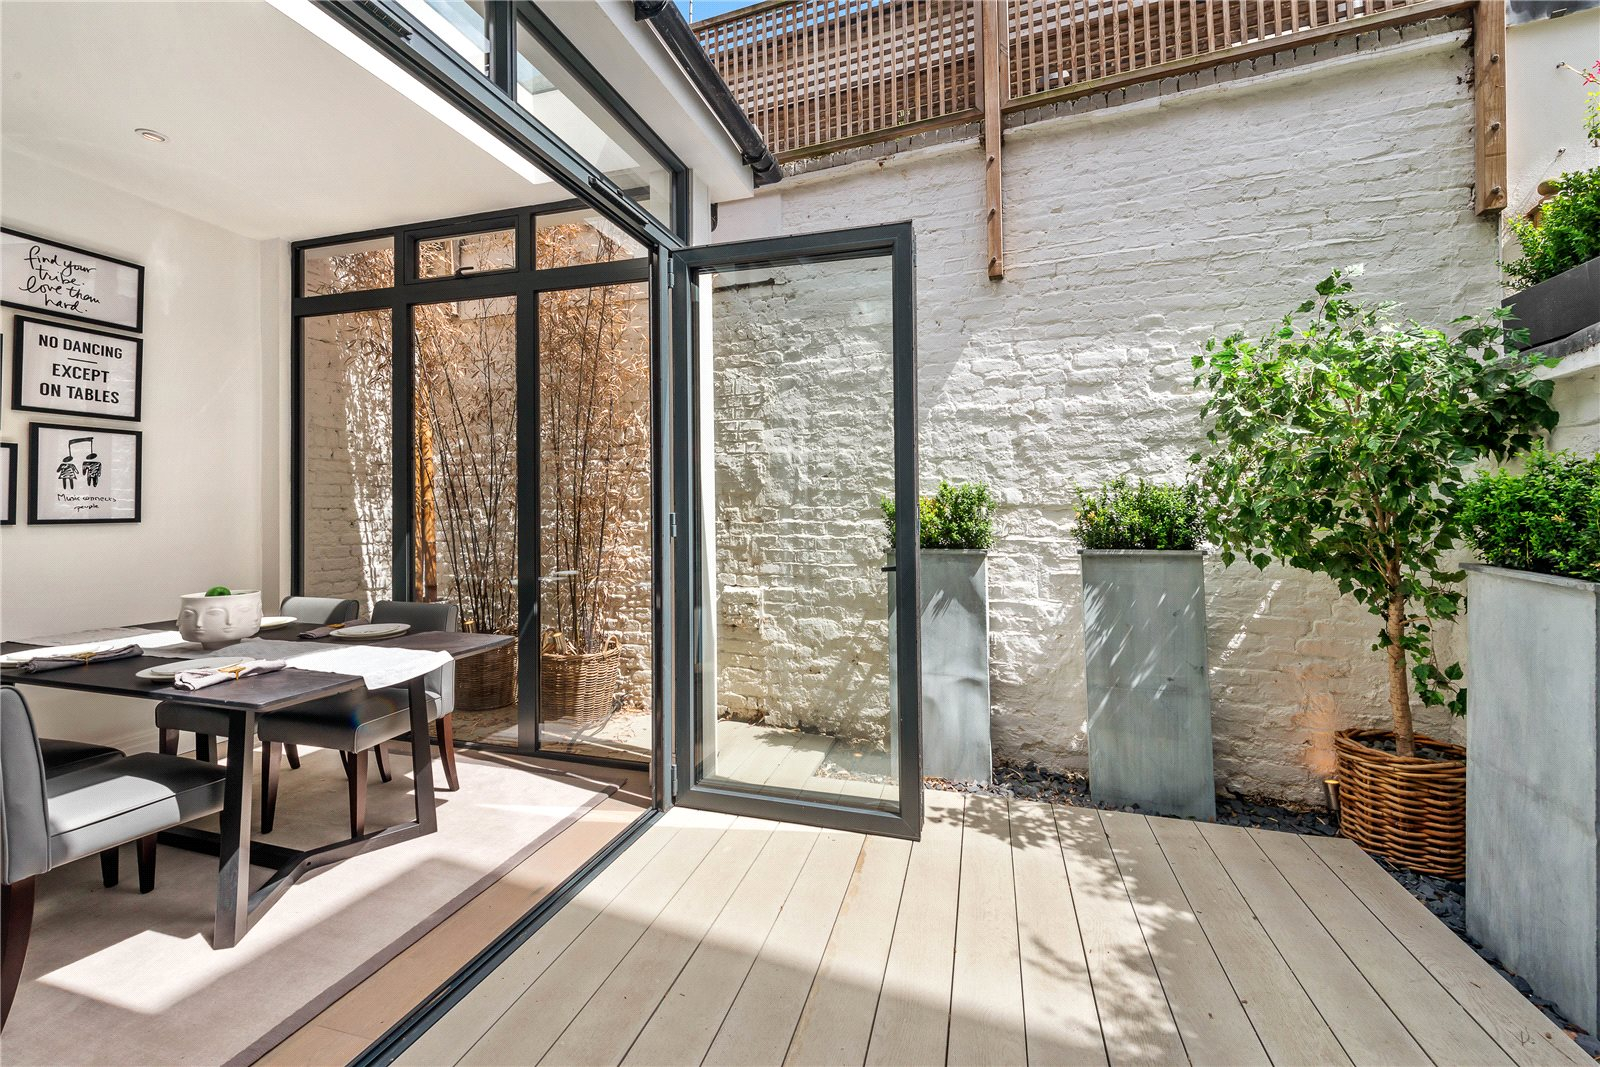 Single Family Home for Sale at Radnor Walk, London, SW3 London, England